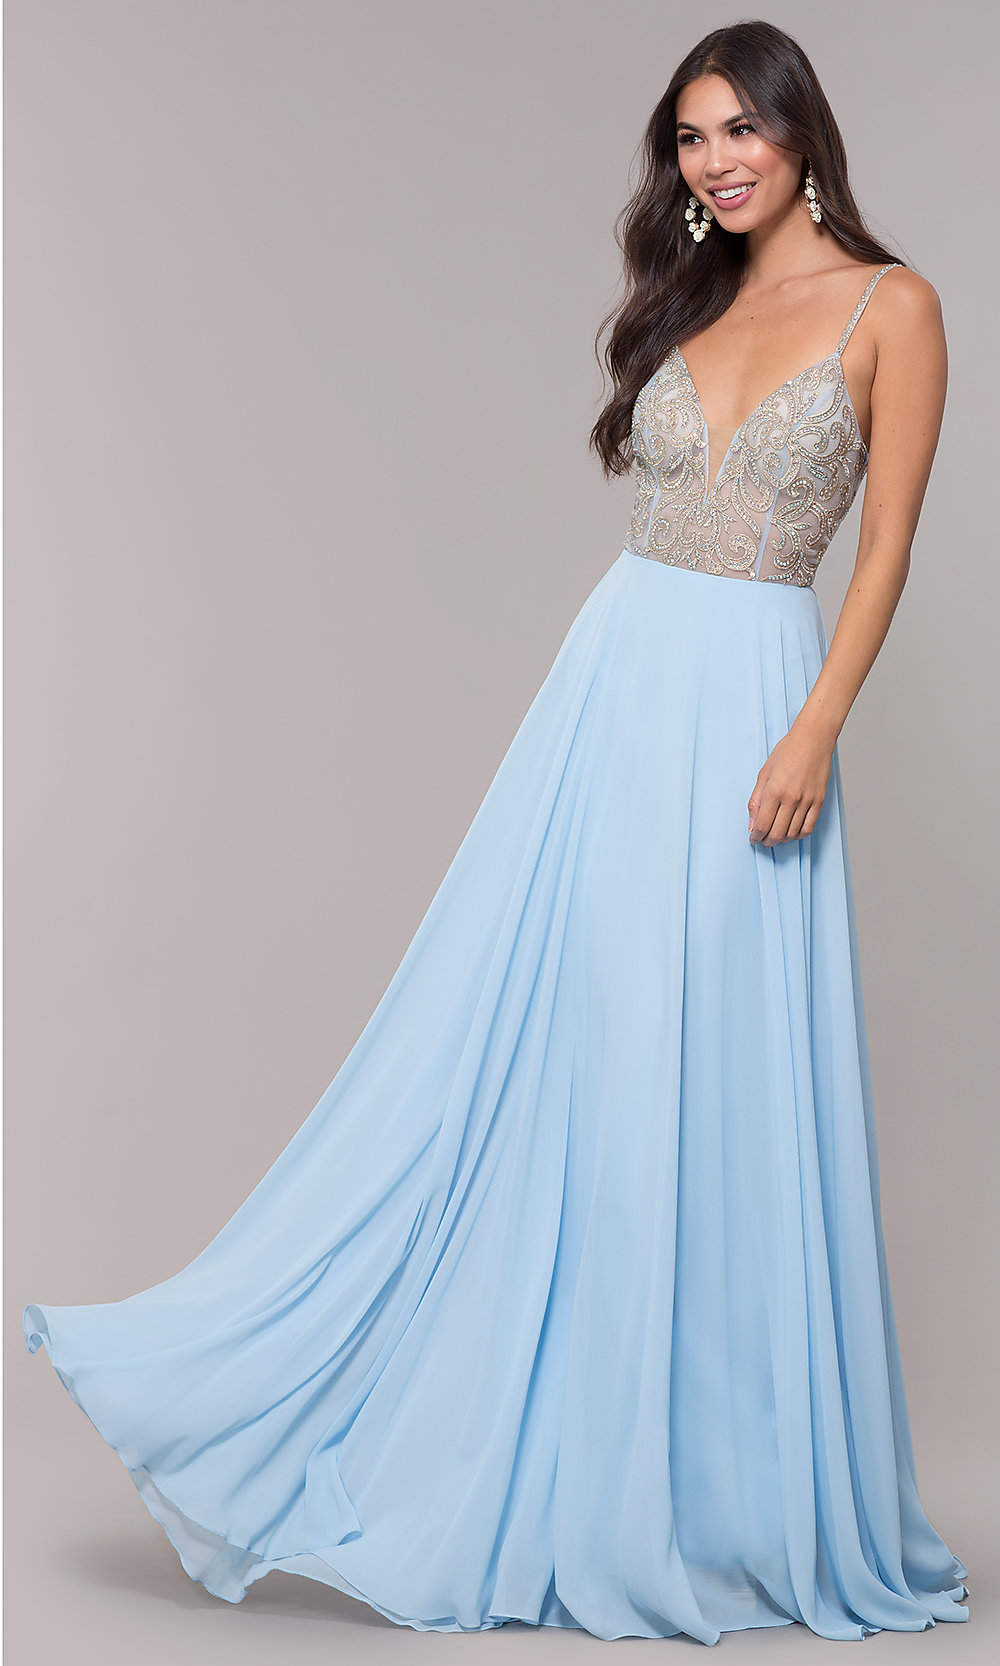 b6d46d821e1a0 ... chiffon v-neck prom dress with beaded bodice. Style: CD. Tap to expand